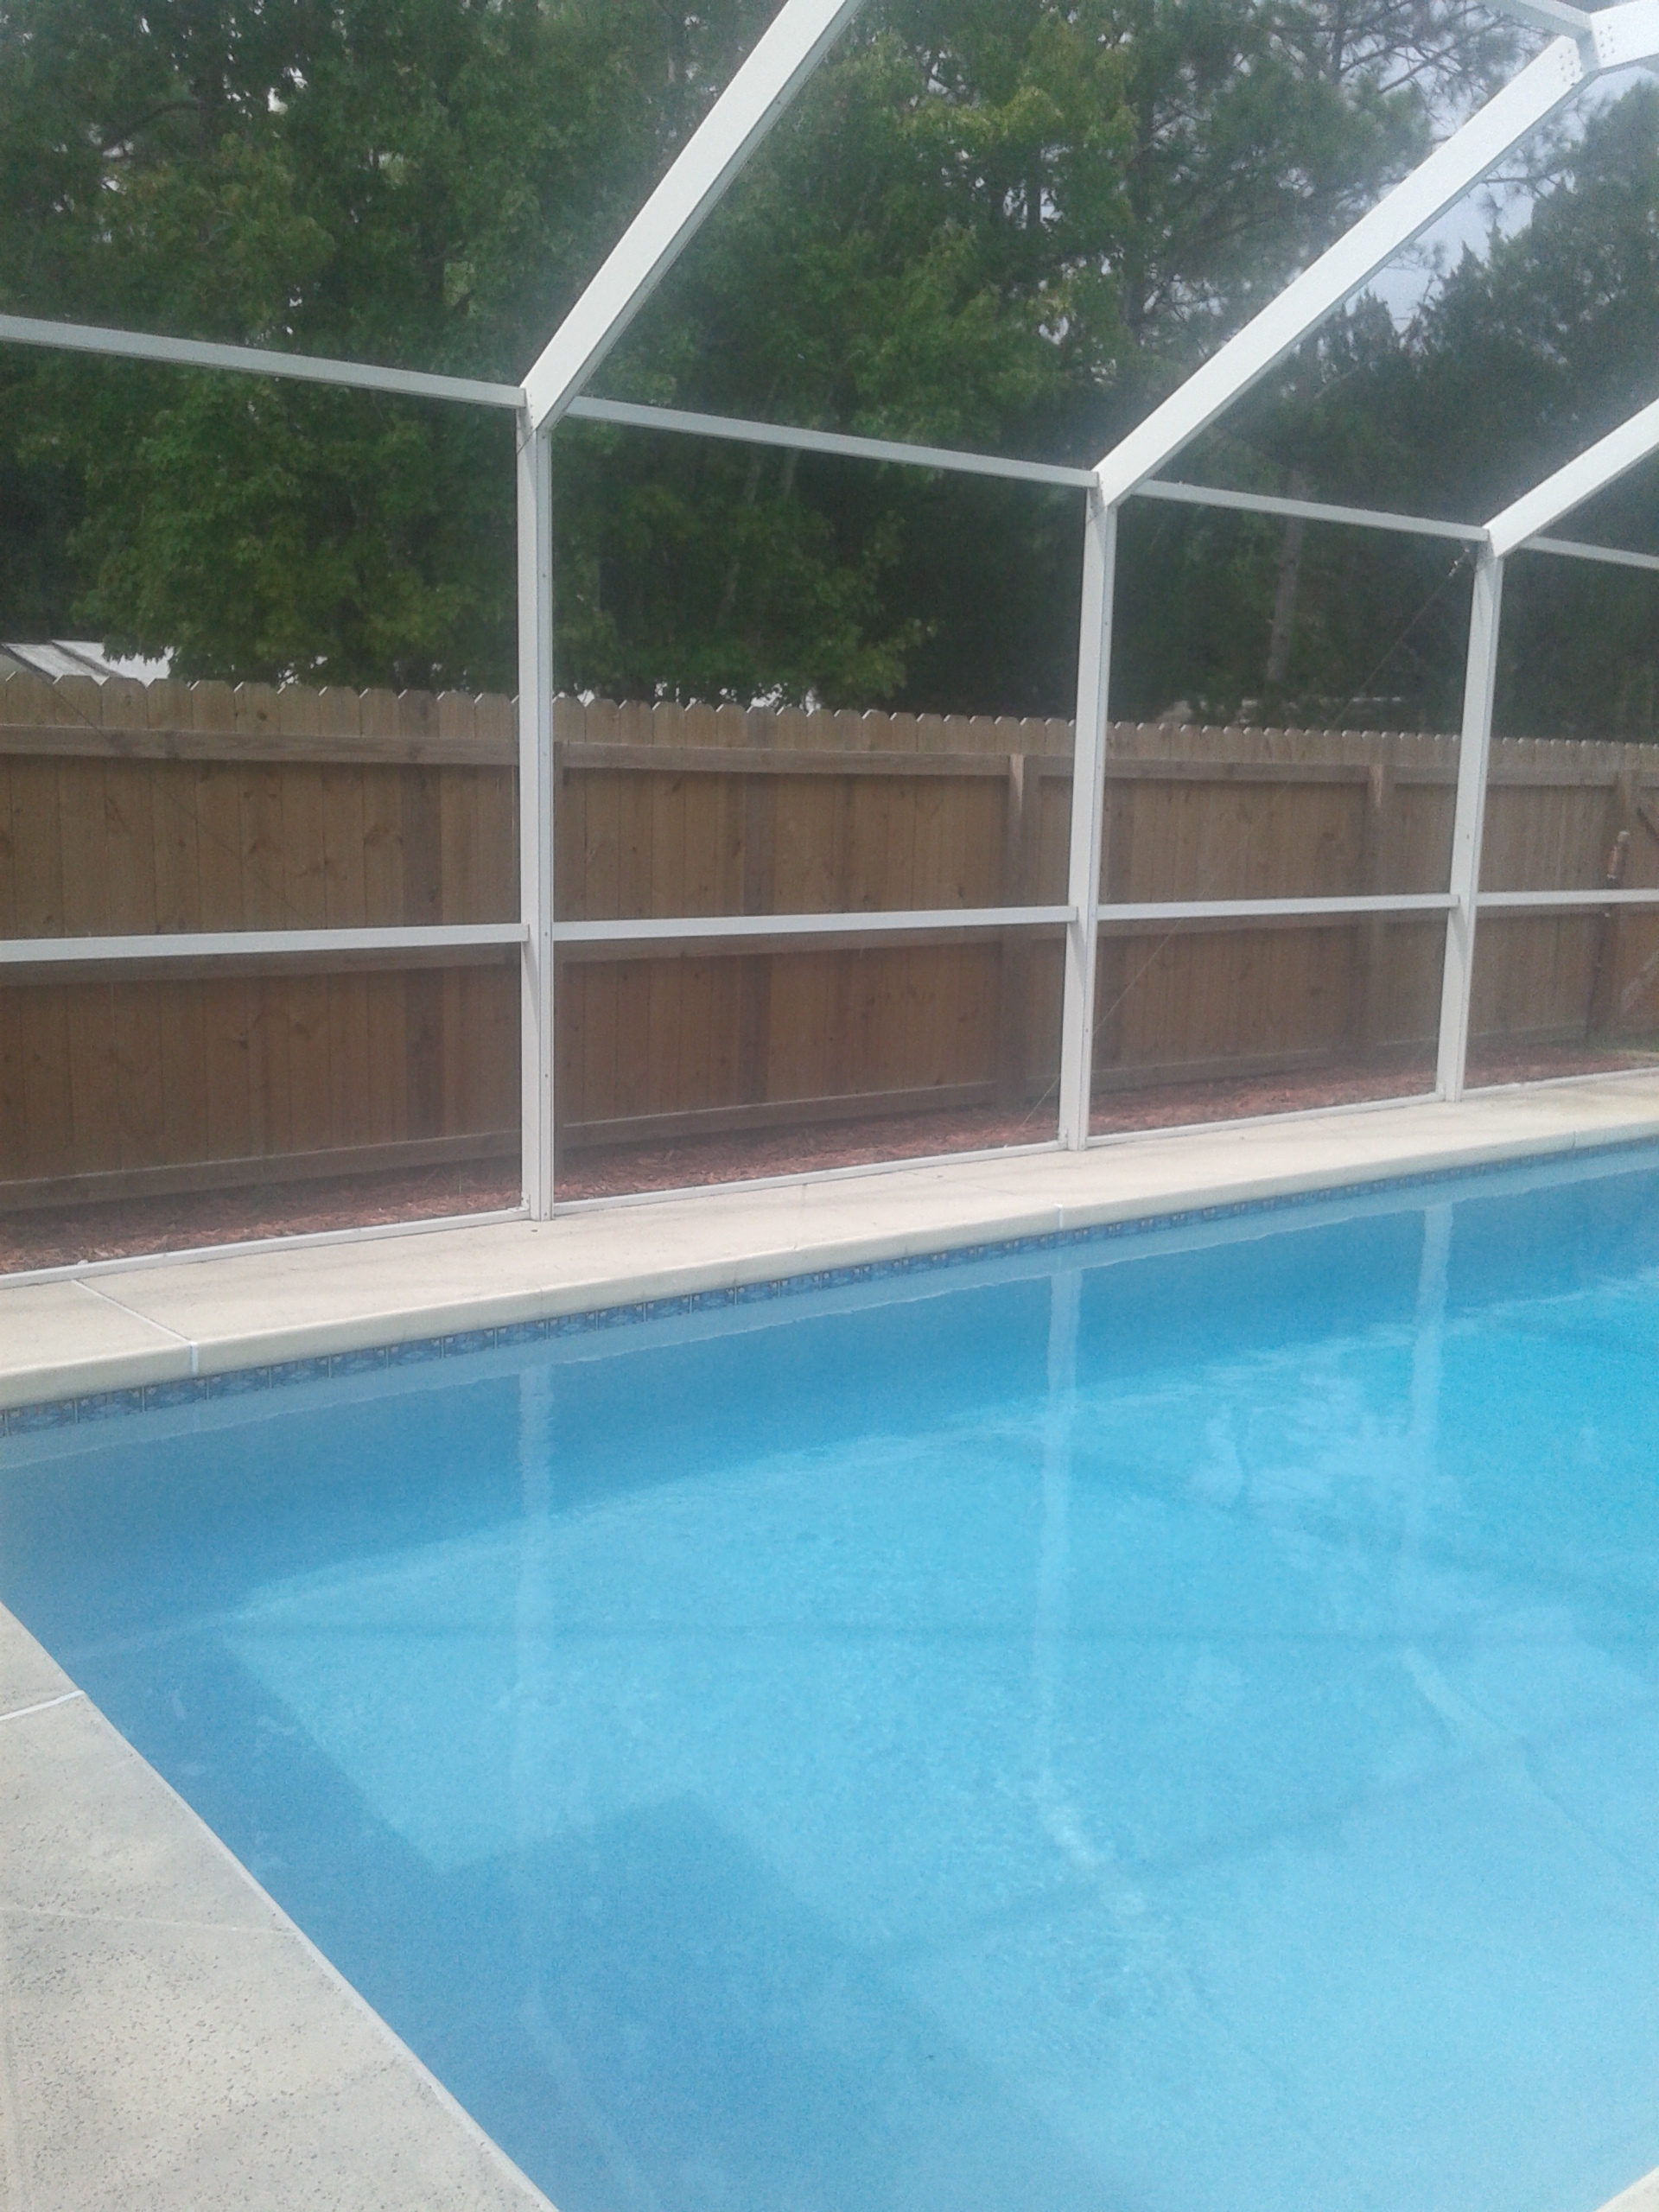 Need advice on tropical pool landscaping in florida lawn for Garden city pool 2015